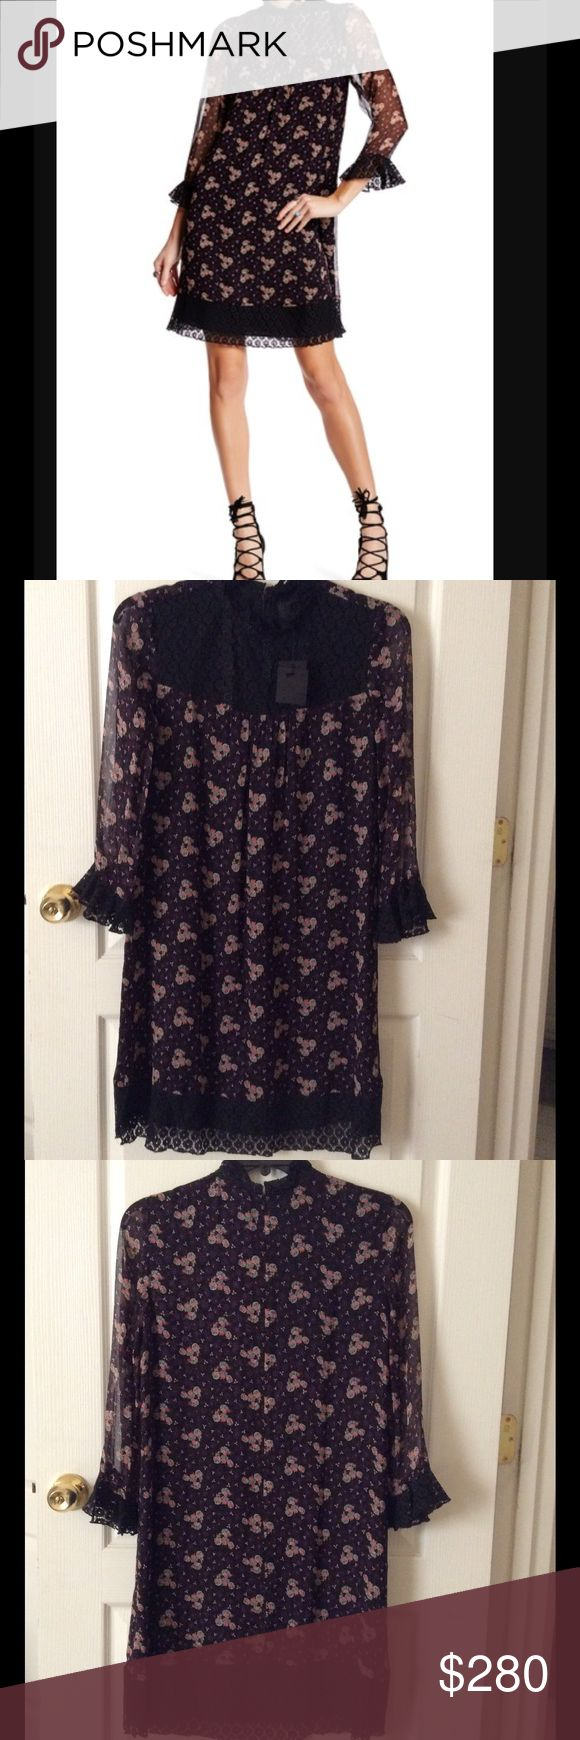 🆕 Anna Sui dress- rt $480 size 6 New with tags authentic ANNA SUI dress with lace detailing. Retails $480 + tax ***PRICE IS FIRM*** no trades please Anna Sui Dresses Midi